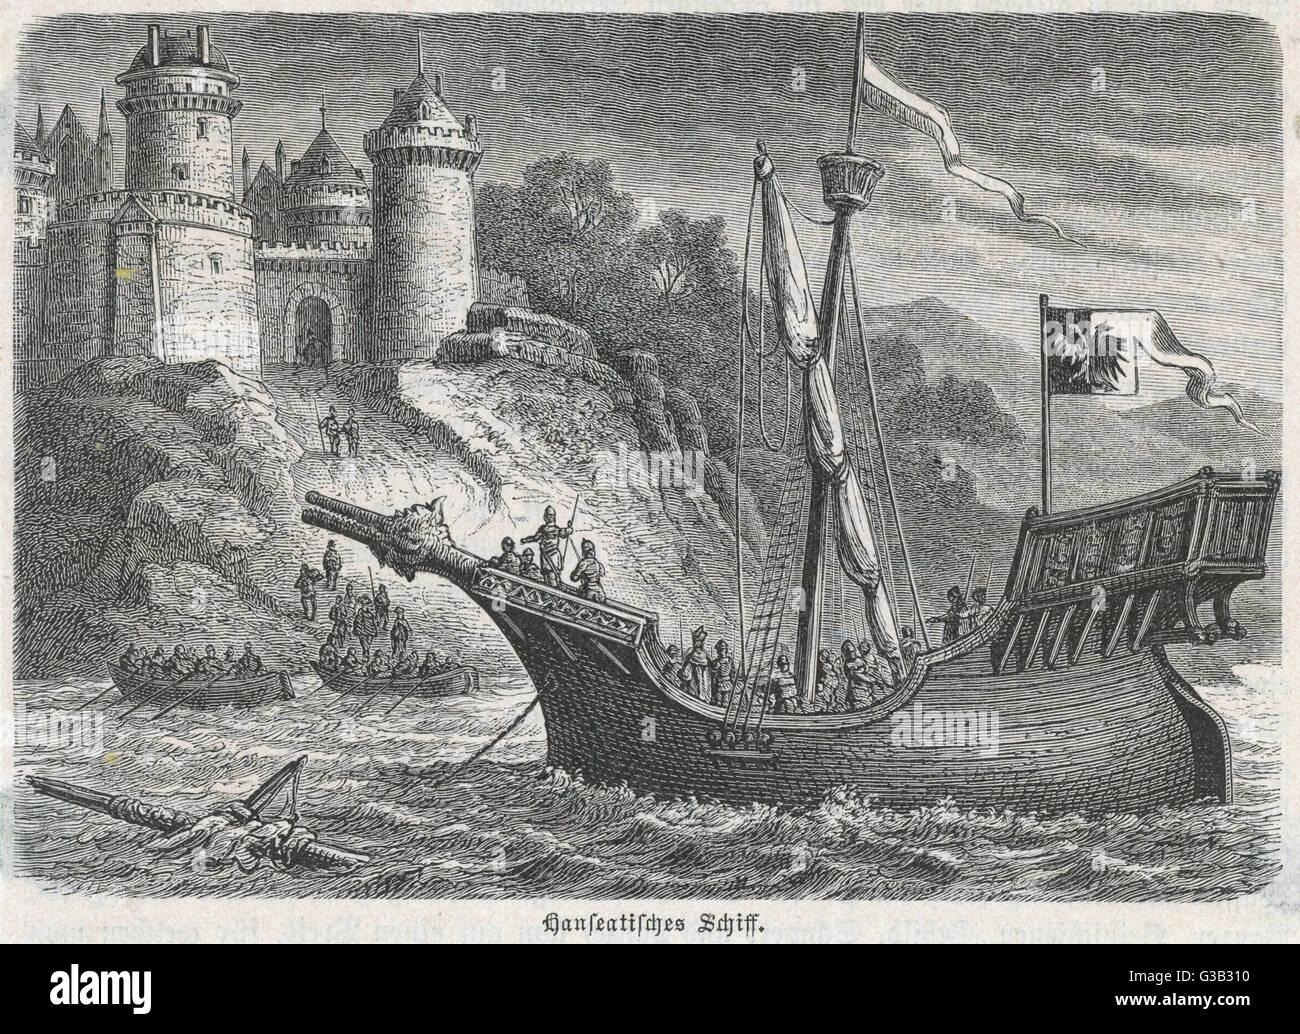 A Hanseatic League vessel          Date: circa 1400 - Stock Image